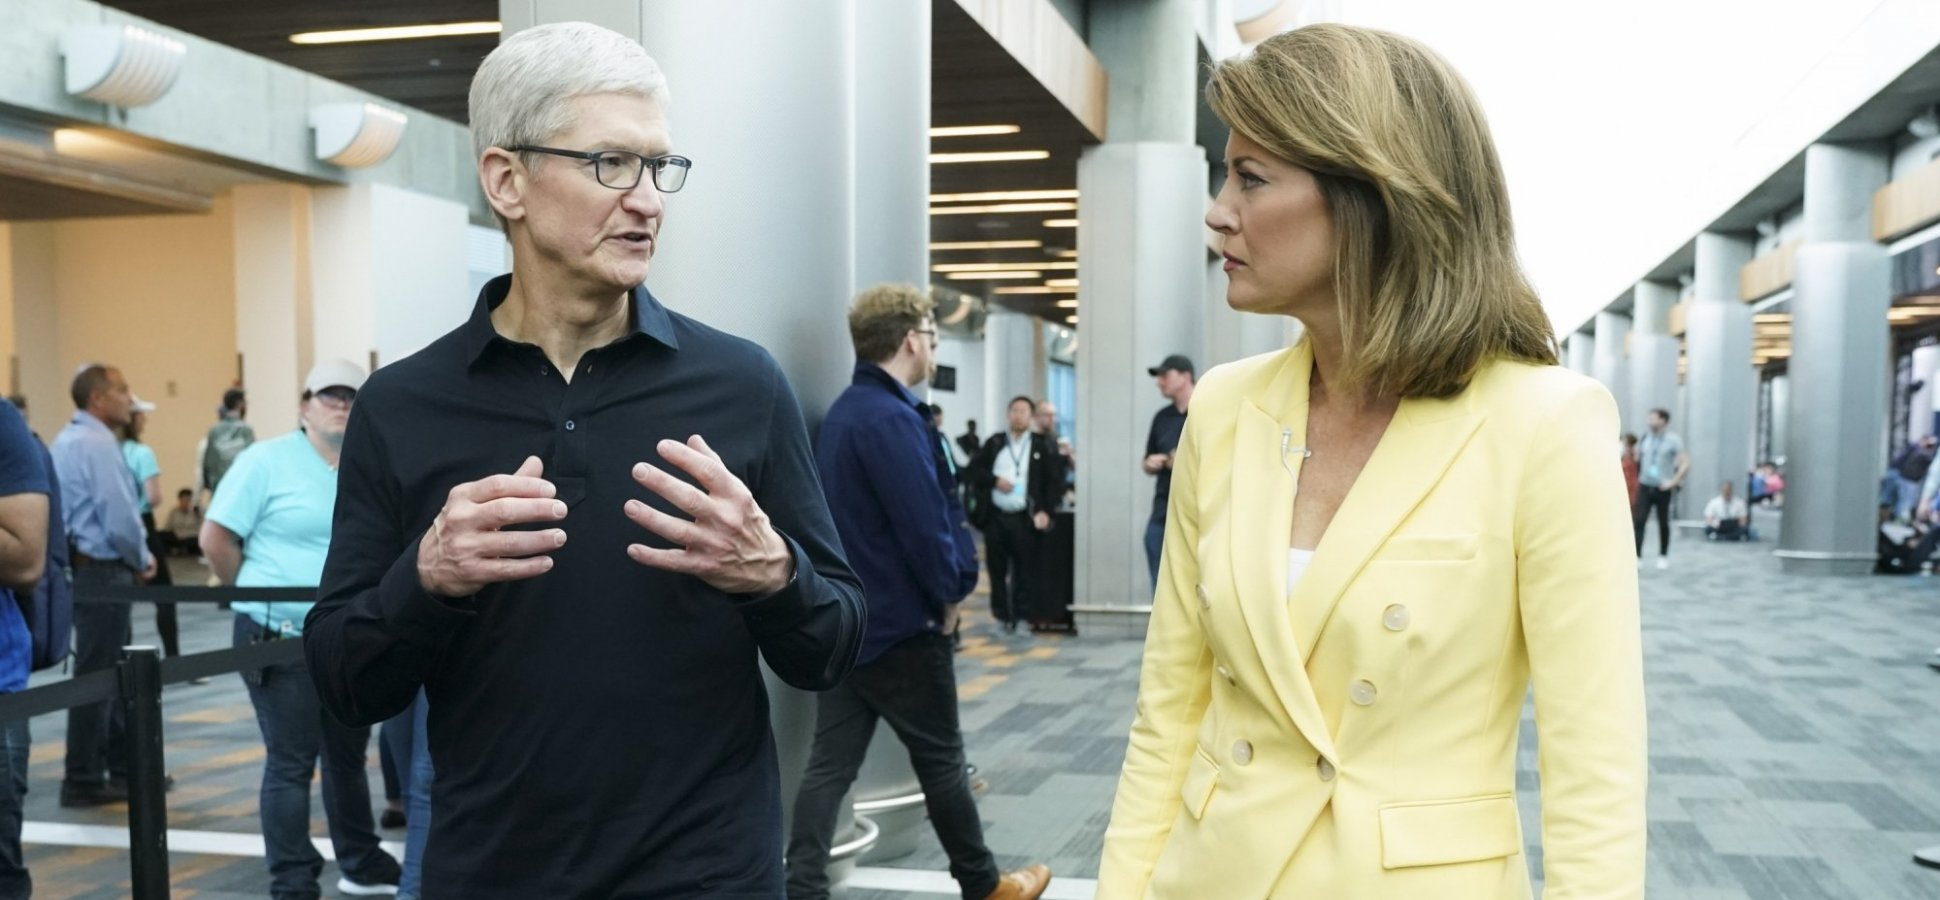 Tim Cook Uses These 5 Words to Take Control of Any Conversation